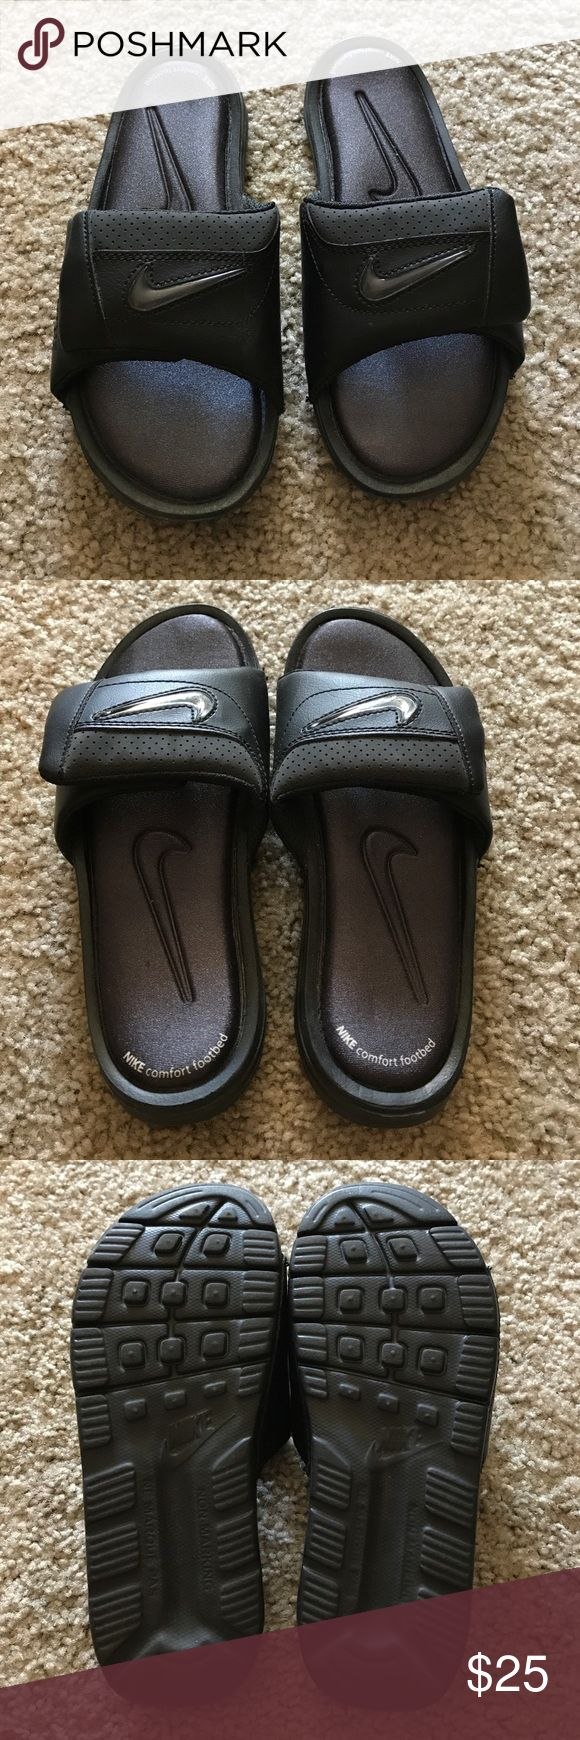 Nike Slip-Ons Sandals w/Color Change Swoosh Like New Condition; Barely Worn.  Comfort Footbed.  Logo can have different color inserts which are included: Green/Orange on one, then Blue/Yellow on the other. Nike Shoes Sandals & Flip Flops